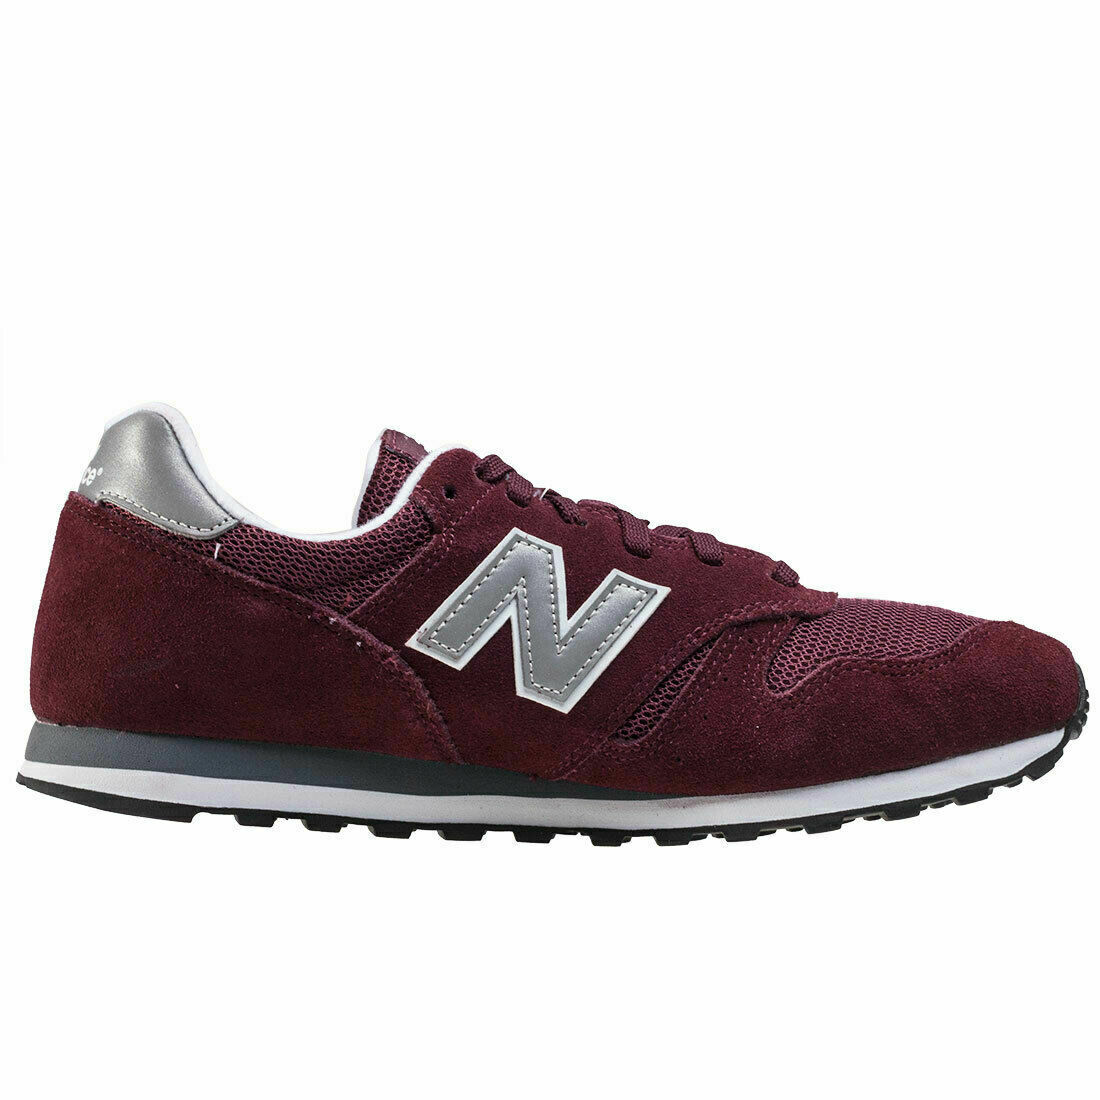 Mens New Balance ML373 BN Trainers in Burgundy & Grey / Silver - UK Size 8